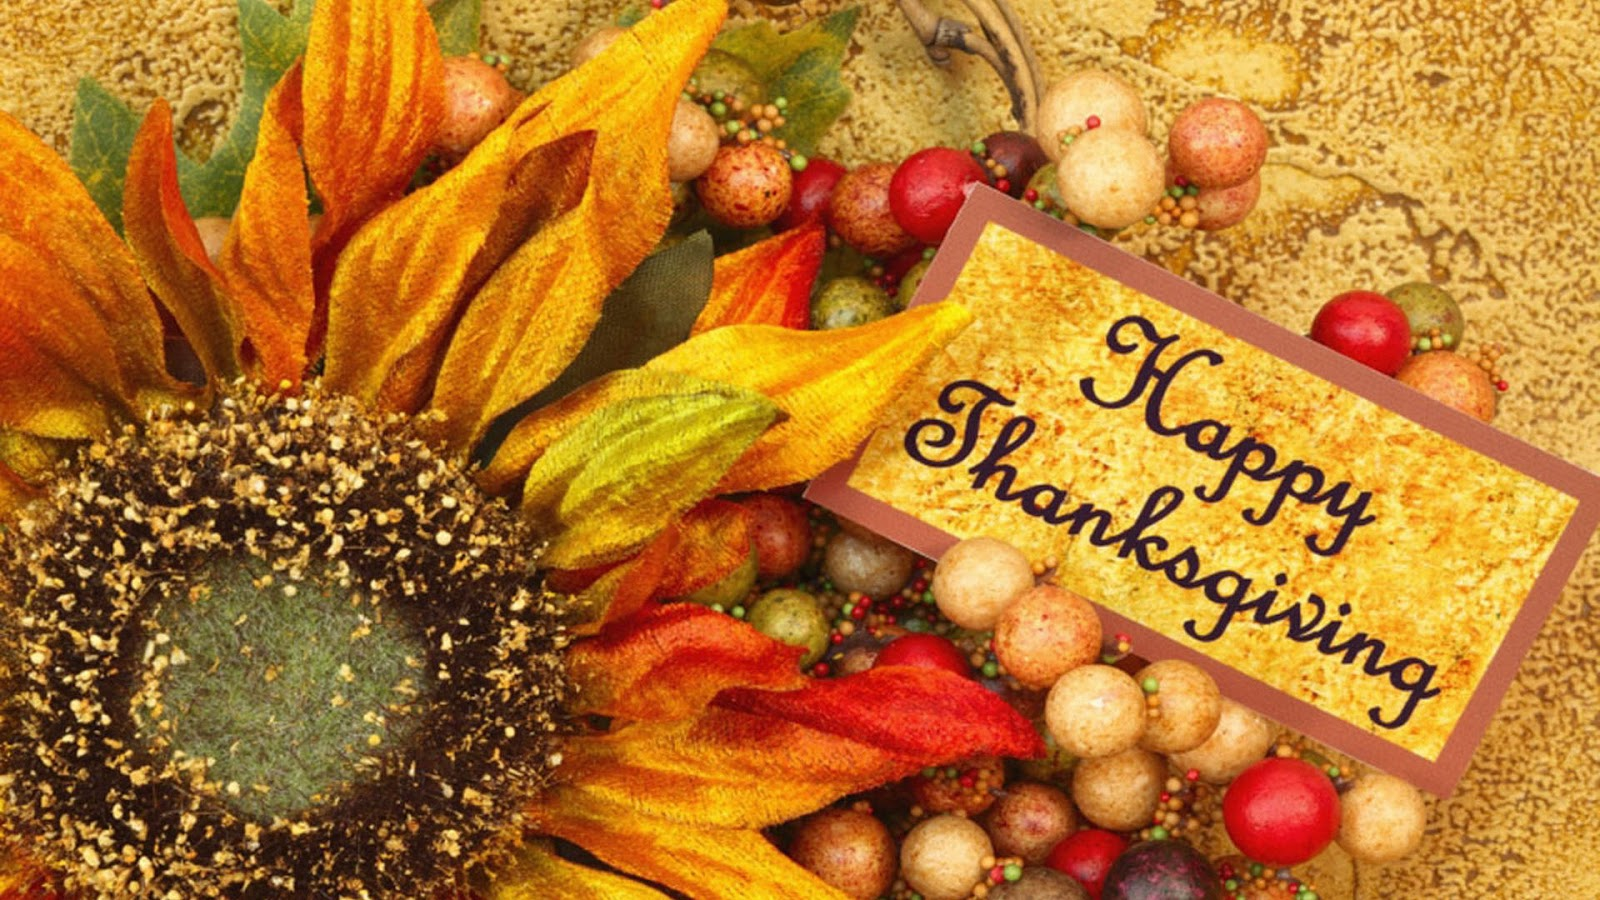 Hd Phone Wallpapers Fall Thanksgiving Day 2012 Free Hd Thanksgiving Wallpapers For